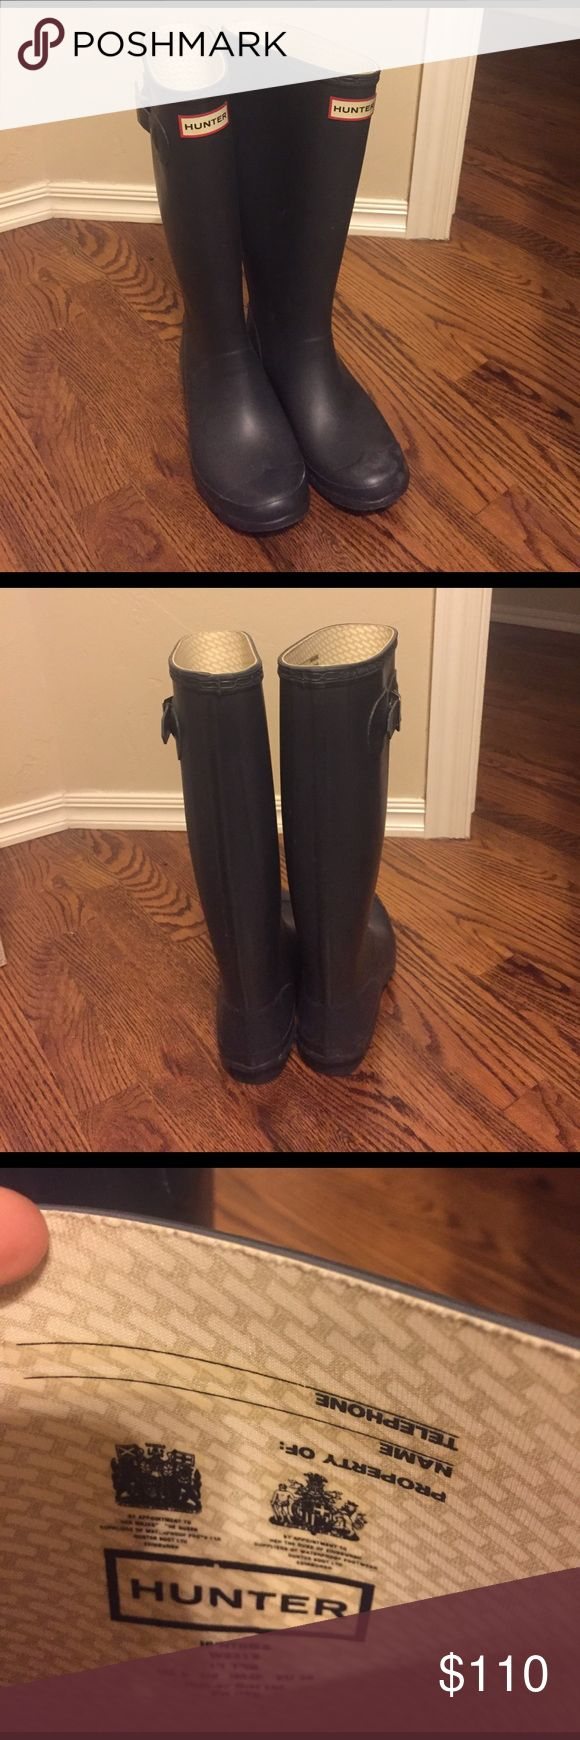 Hunter Huntress Wellies Navy 100% Authentic Wide Calf Hunter Rain Boots. In perfect condition, no wear!! Navy, size 7 Female/6 Male - would also fit size 7.5-8                                                                    Model: W23179 Hunter Shoes Winter & Rain Boots